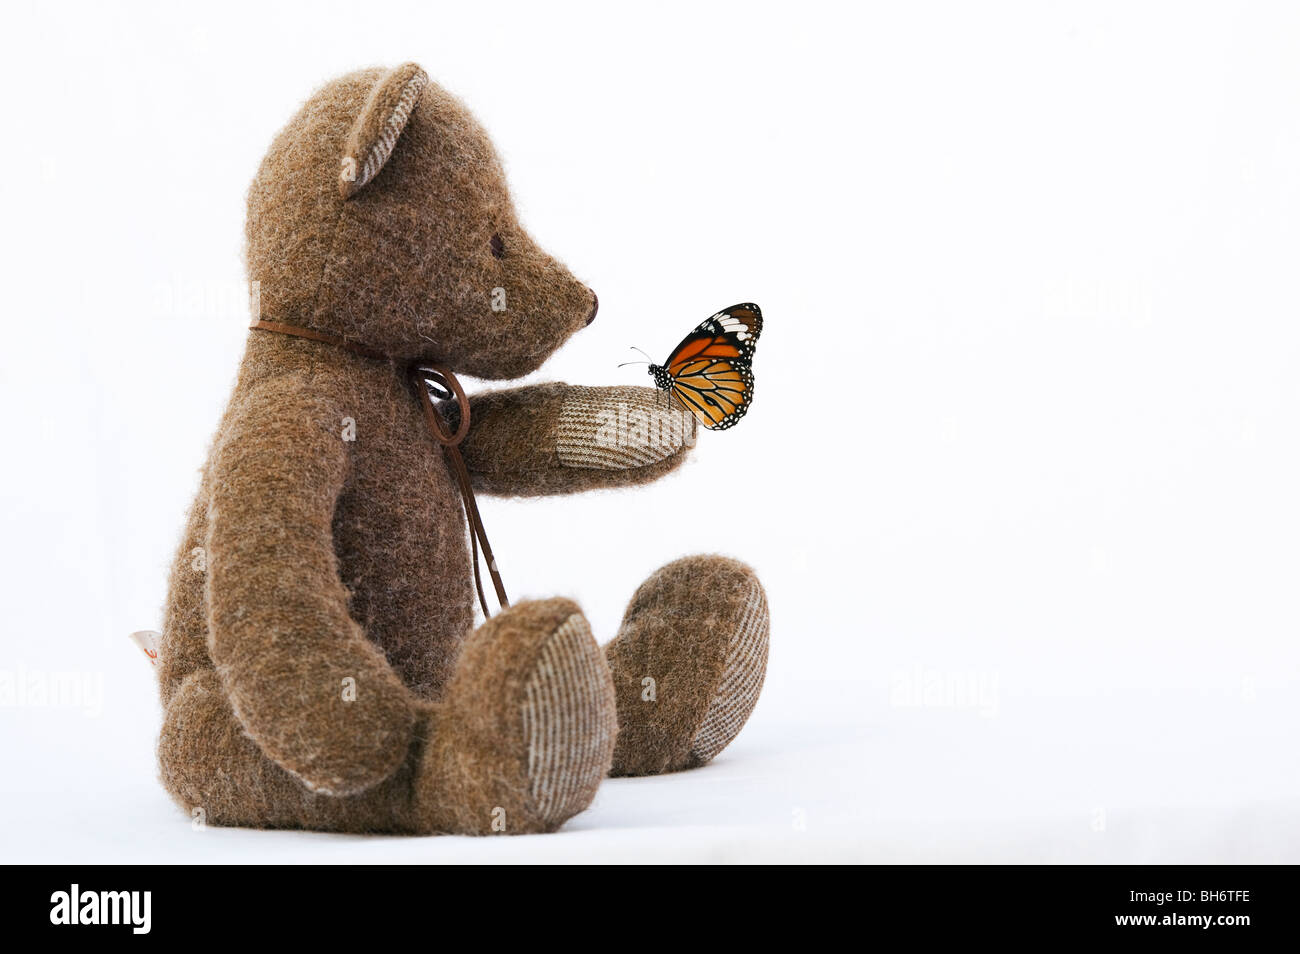 Teddy bear holding a Striped Tiger butterfly against a white background - Stock Image